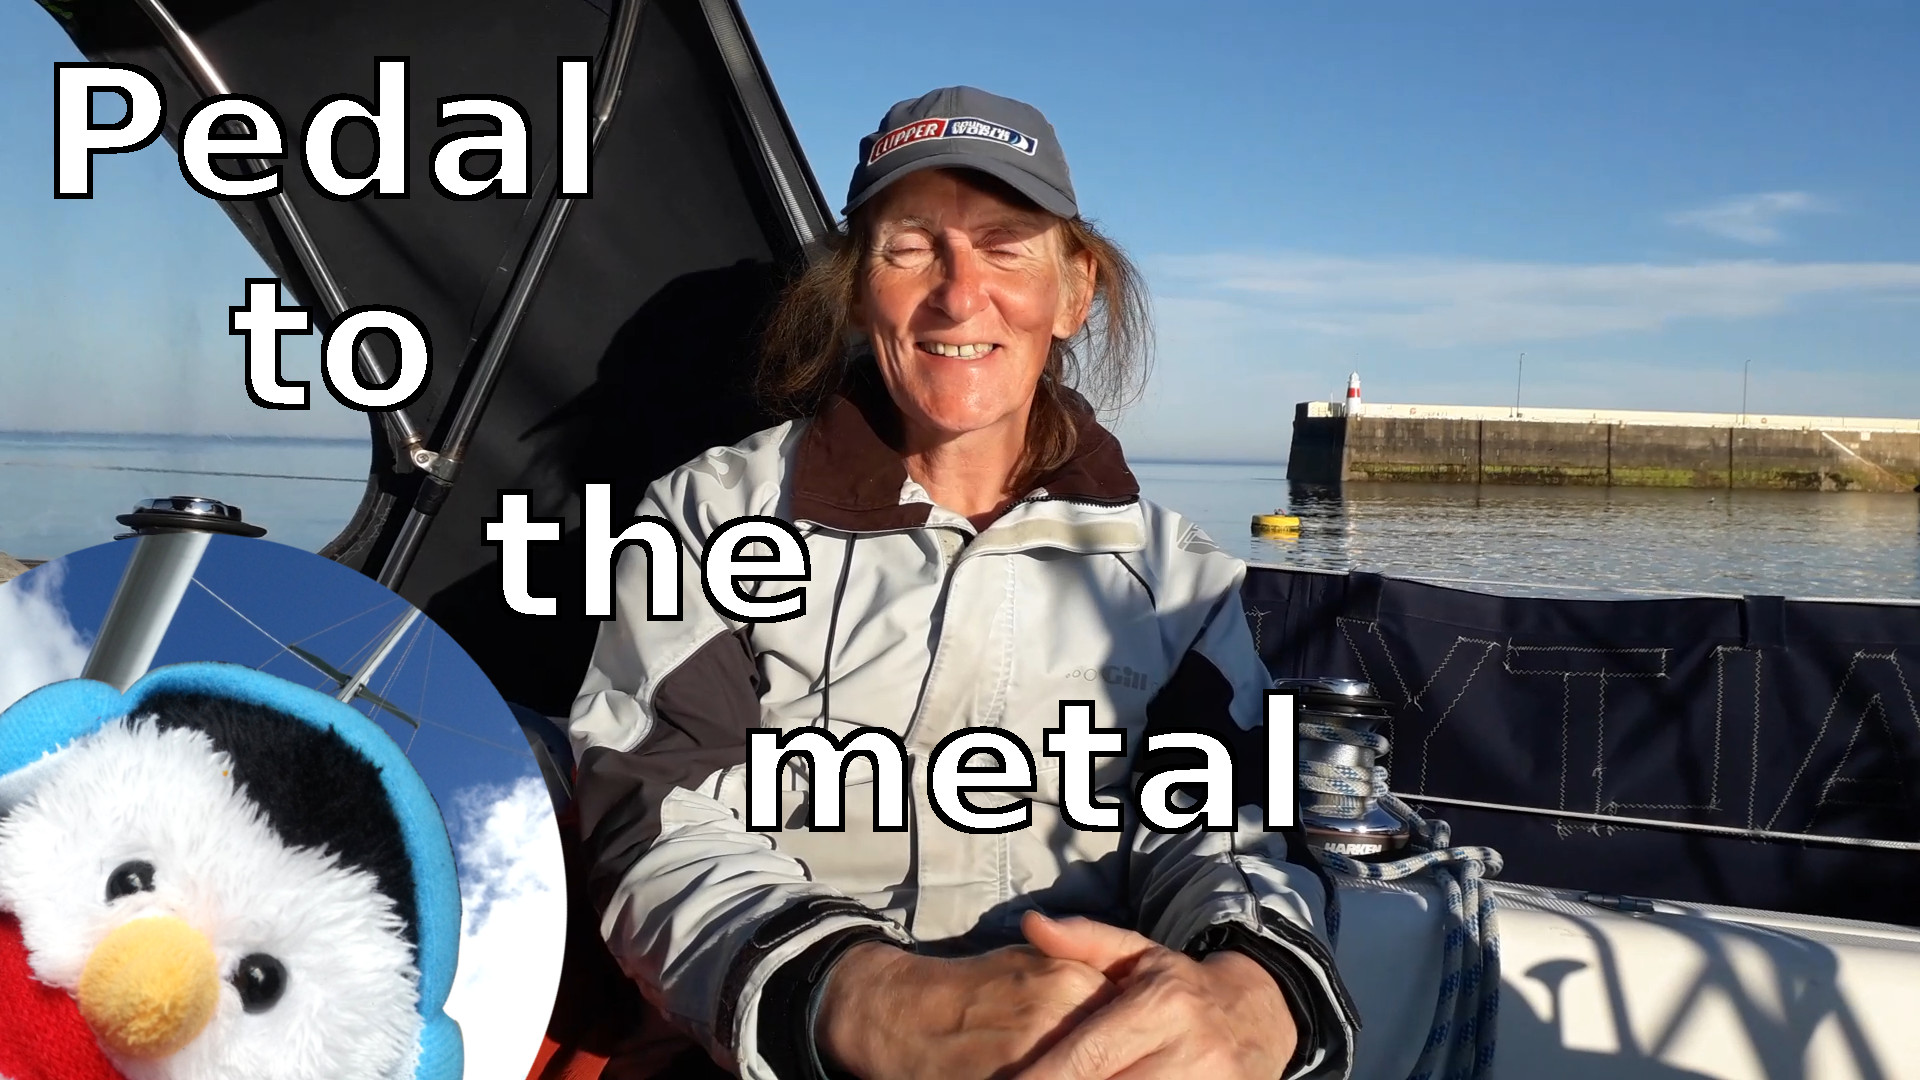 """Watch our """"Pedal to the metal"""" video and add comments"""